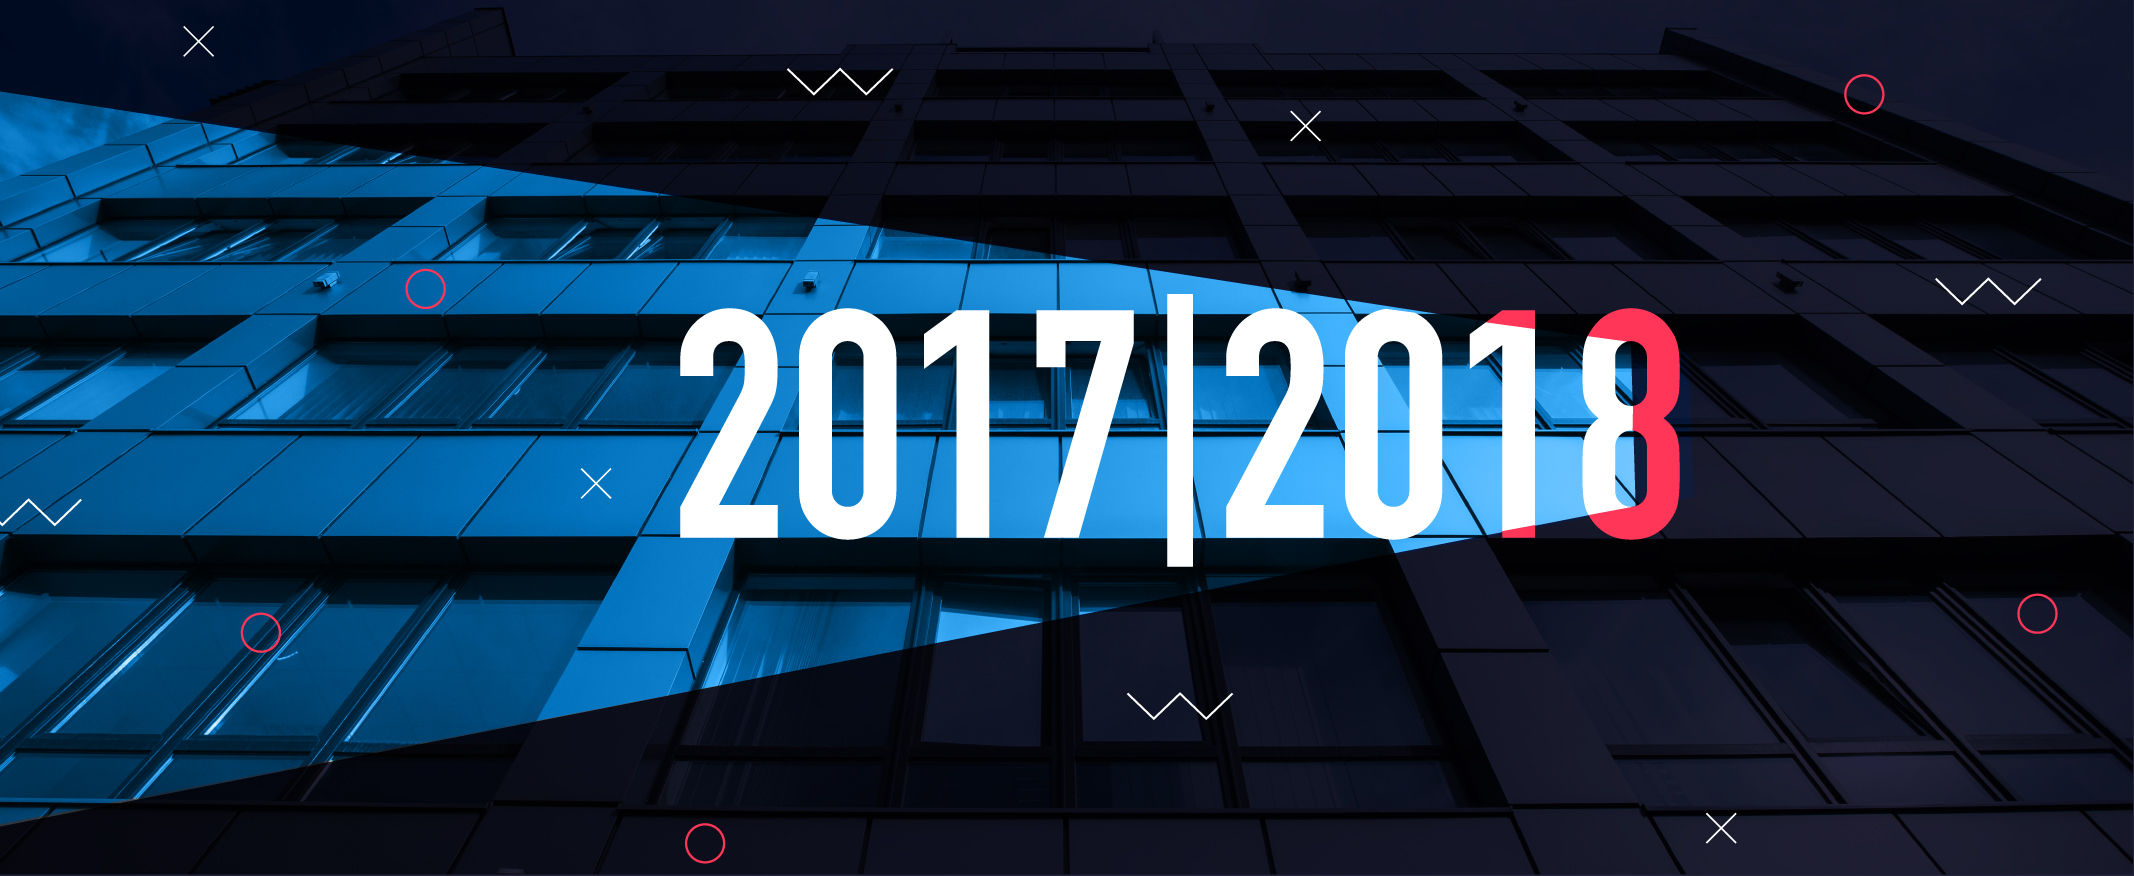 Perfectial Sums Up 2017 and Shares Plans for 2018